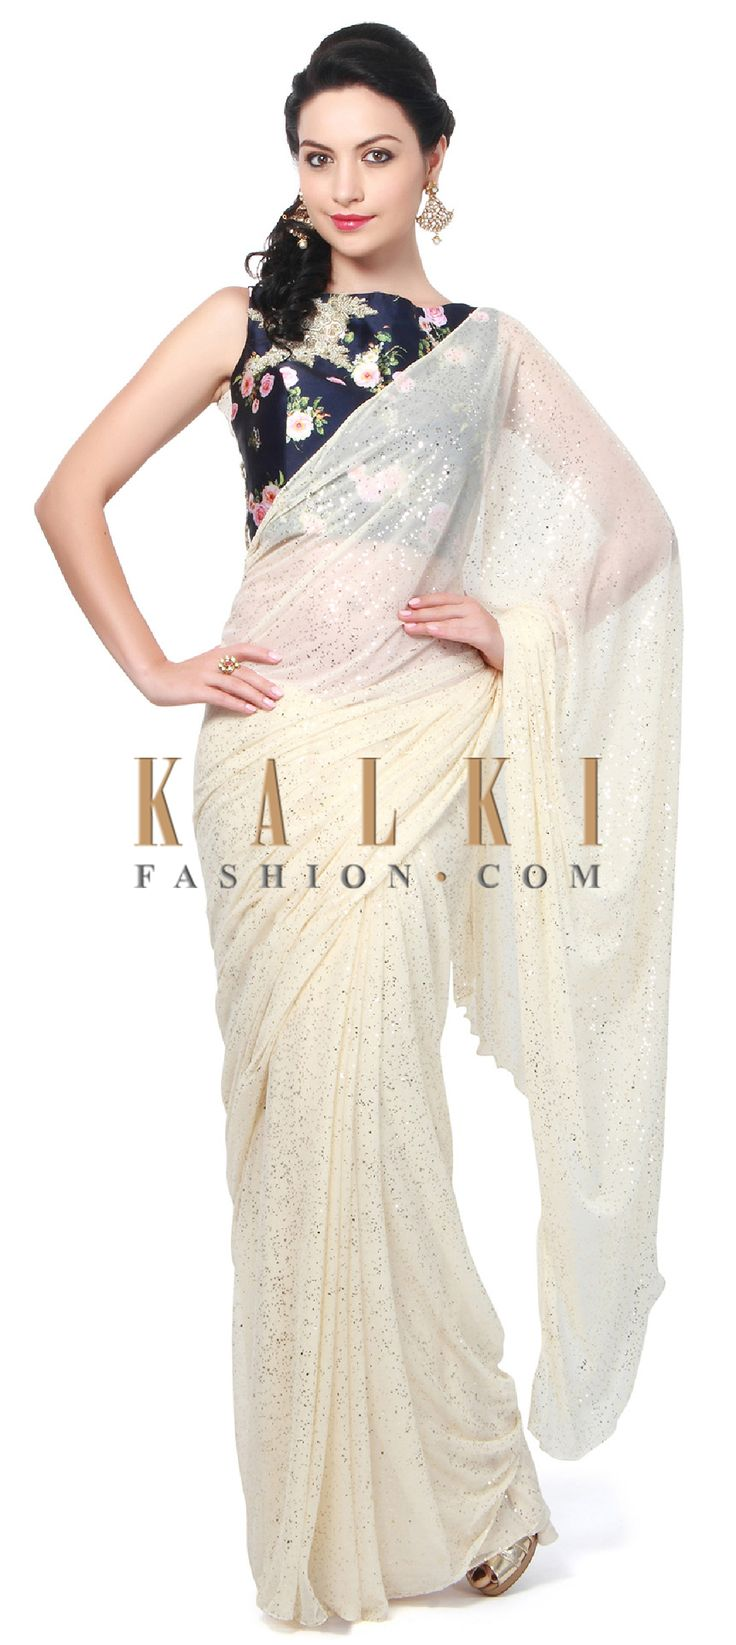 Buy Online from the link below. We ship worldwide (Free Shipping over US$100). Product SKU - 315466.Product Link - http://www.kalkifashion.com/off-white-saree-features-with-contrast-floral-blouse-only-on-kalki.html